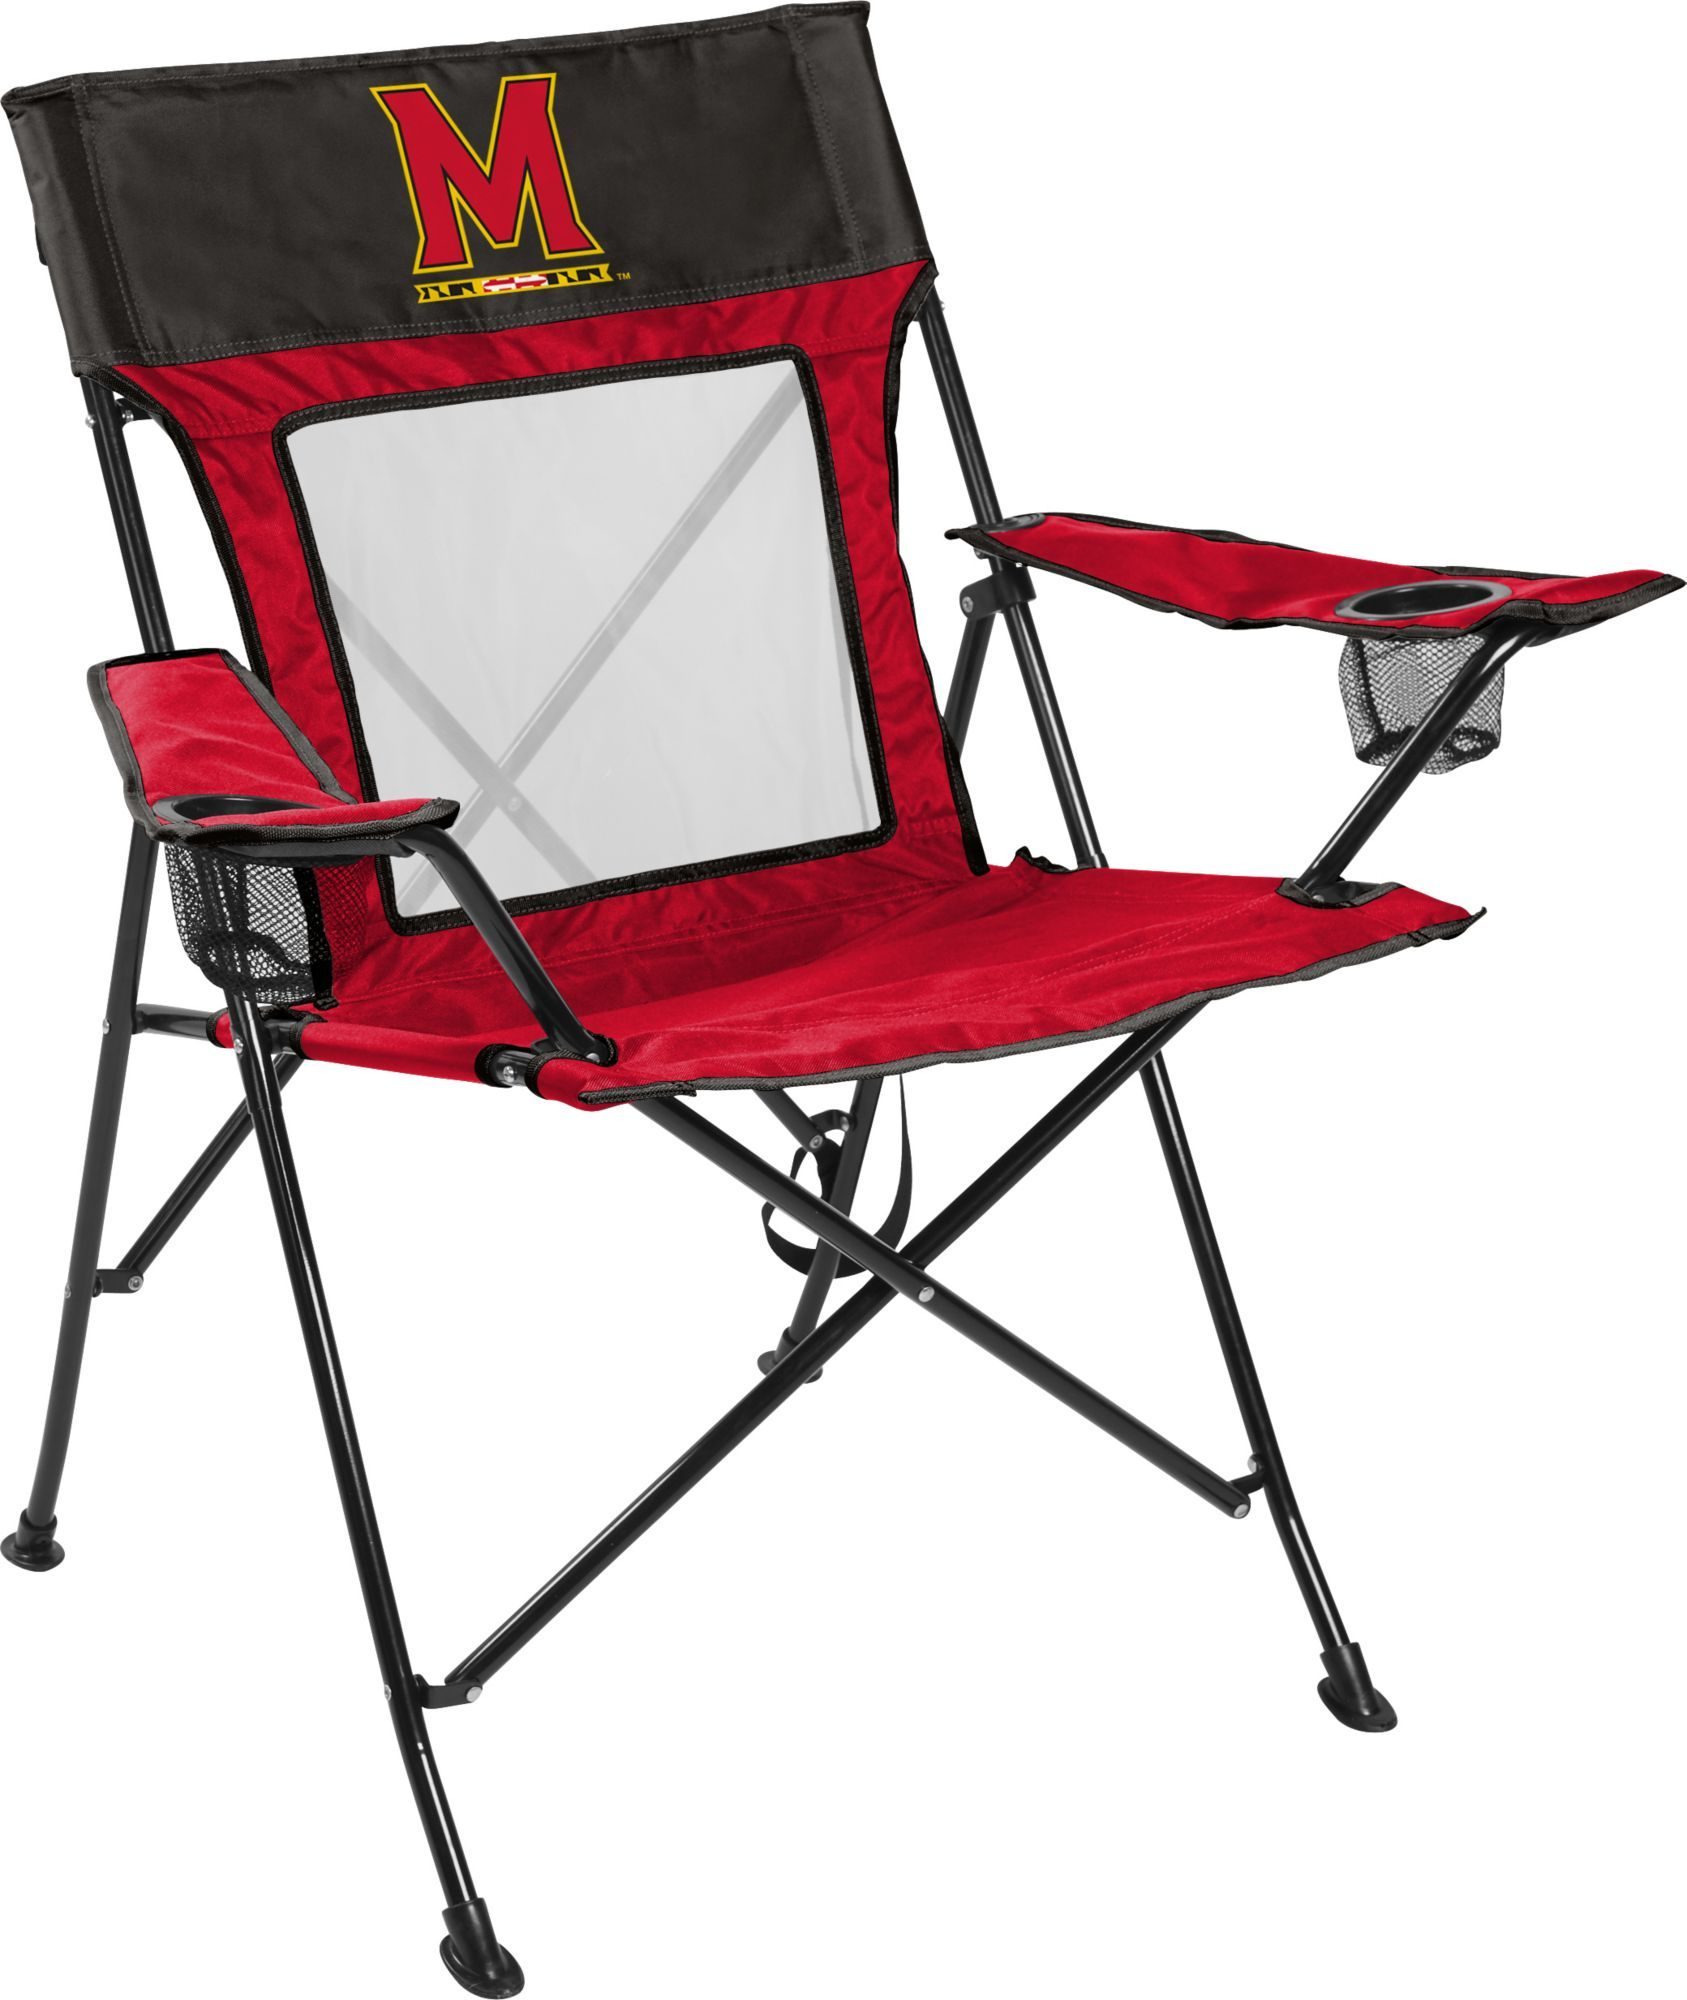 Carolina Panthers Folding Chairs Toys R Us And Tables Rawlings Maryland Terrapins Game Changer Chair Products